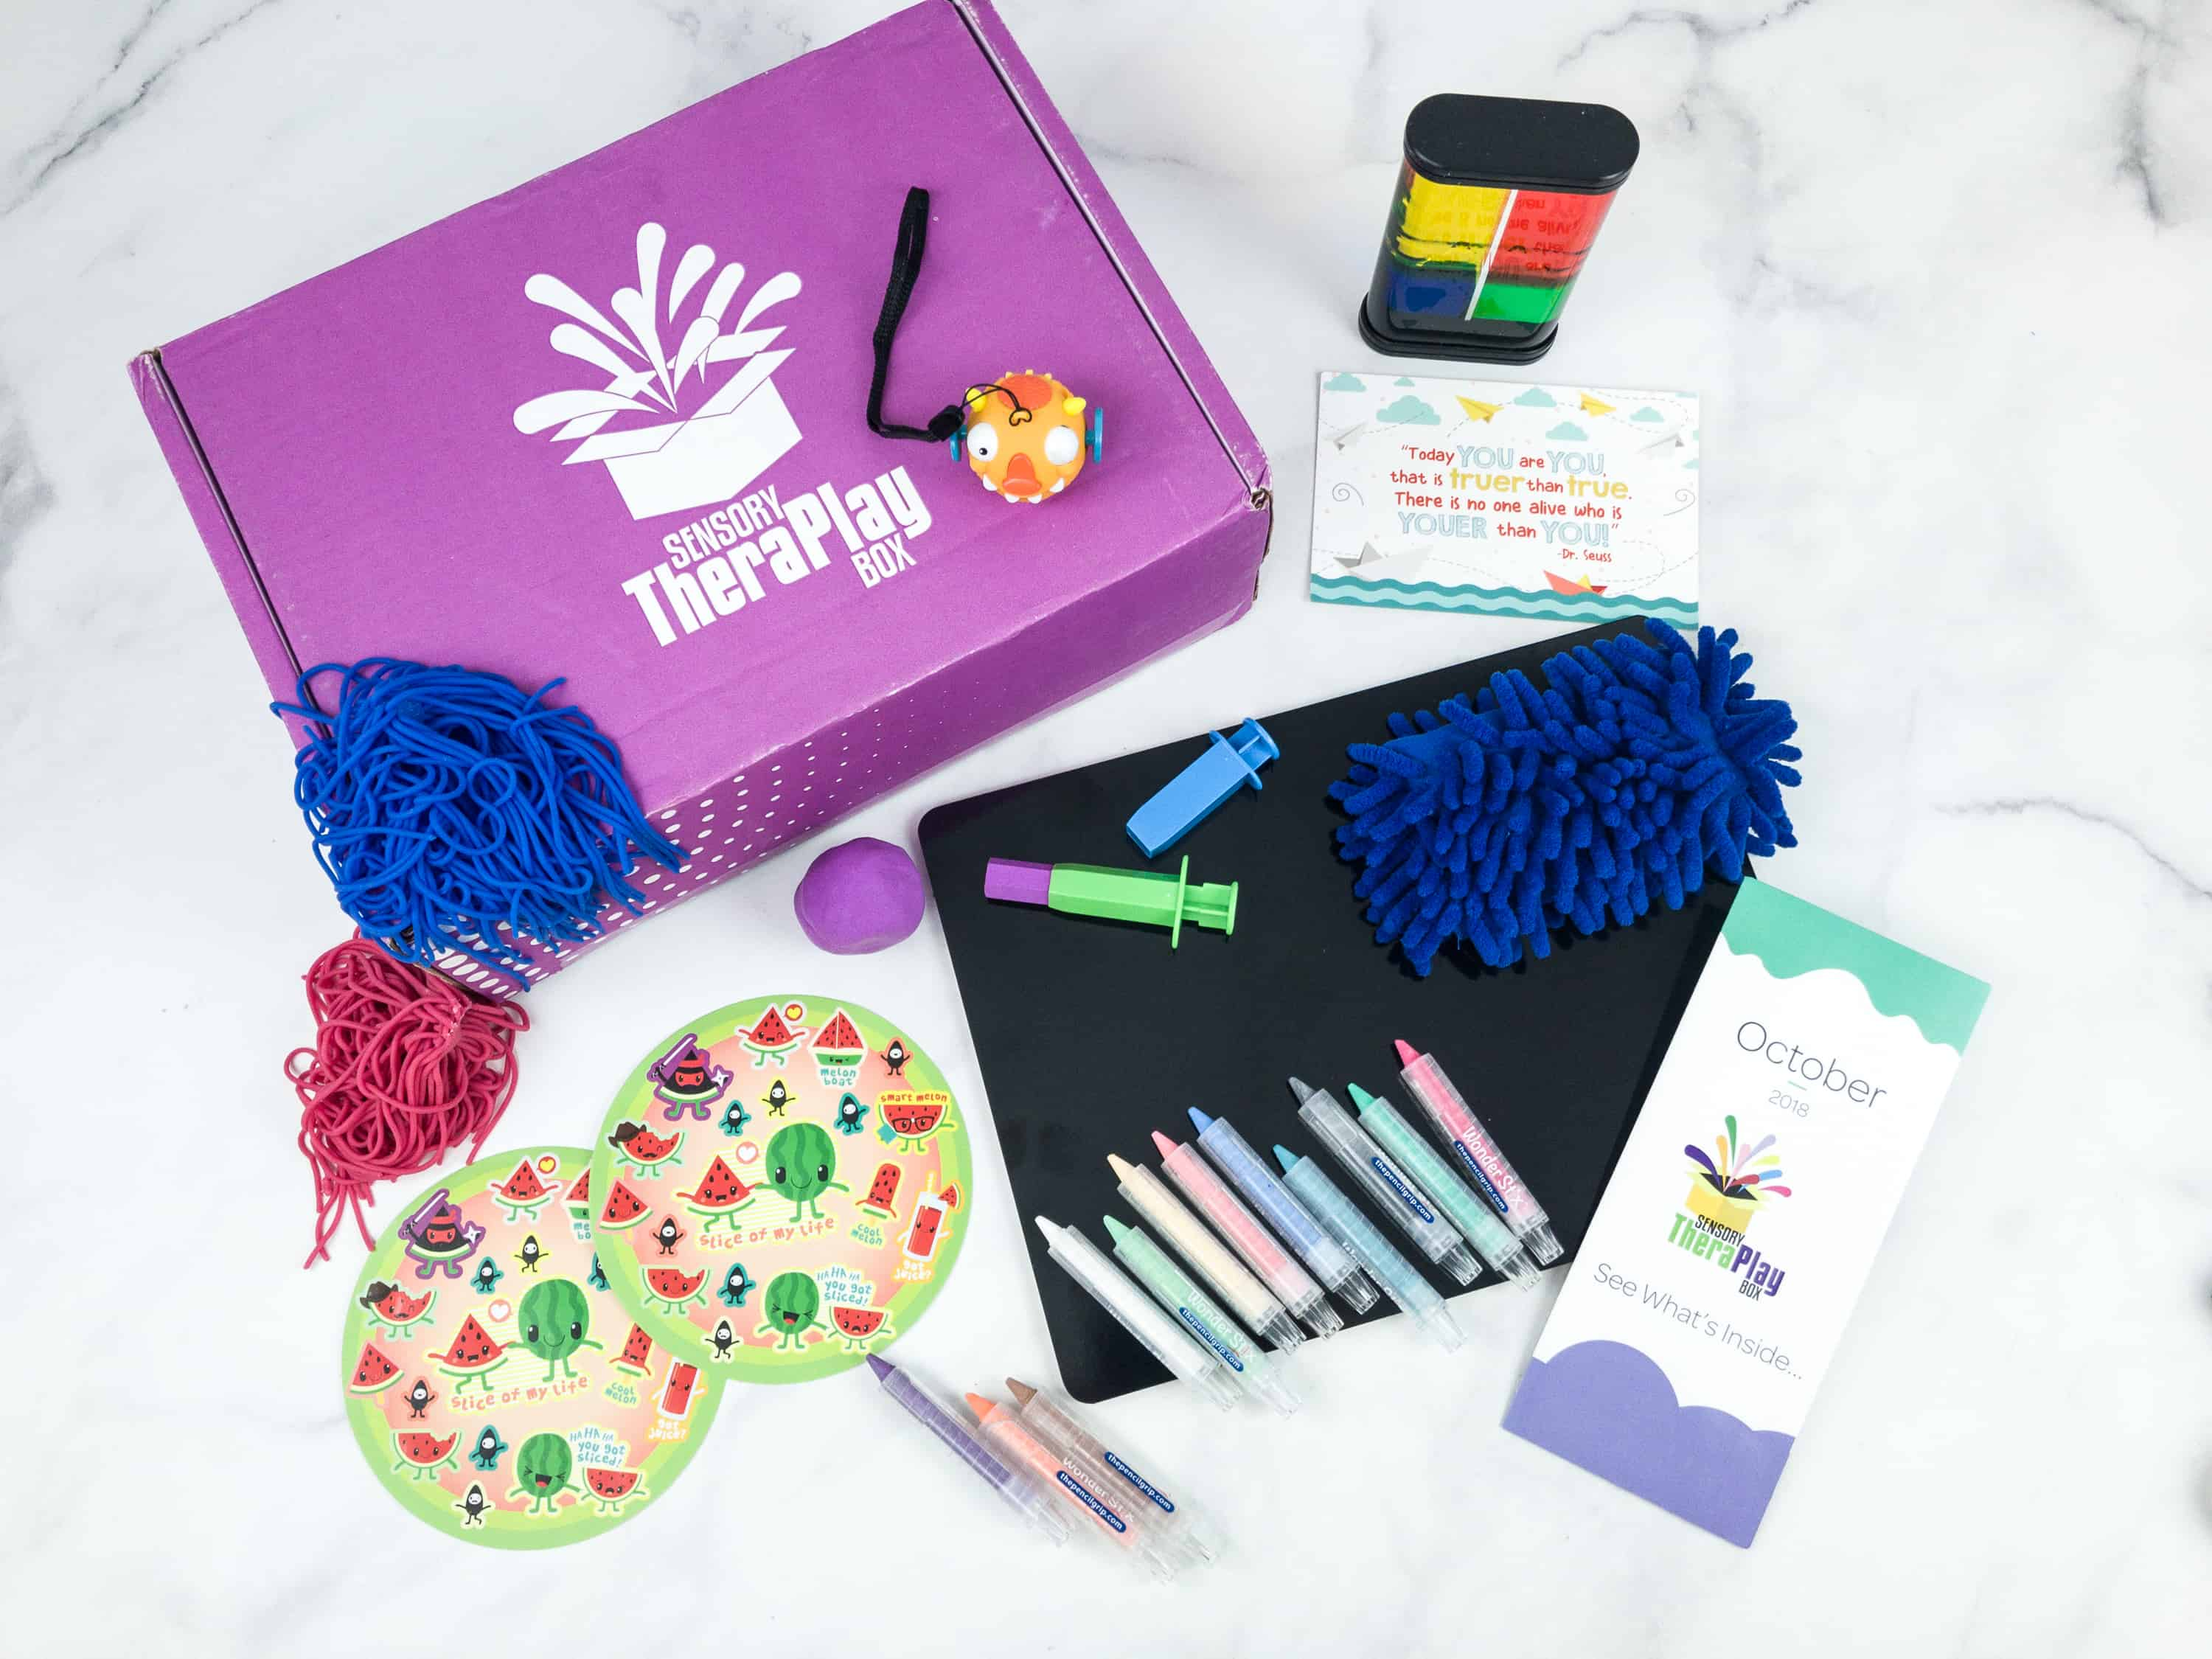 Sensory TheraPLAY Box October 2018 Subscription Box Review + Coupon